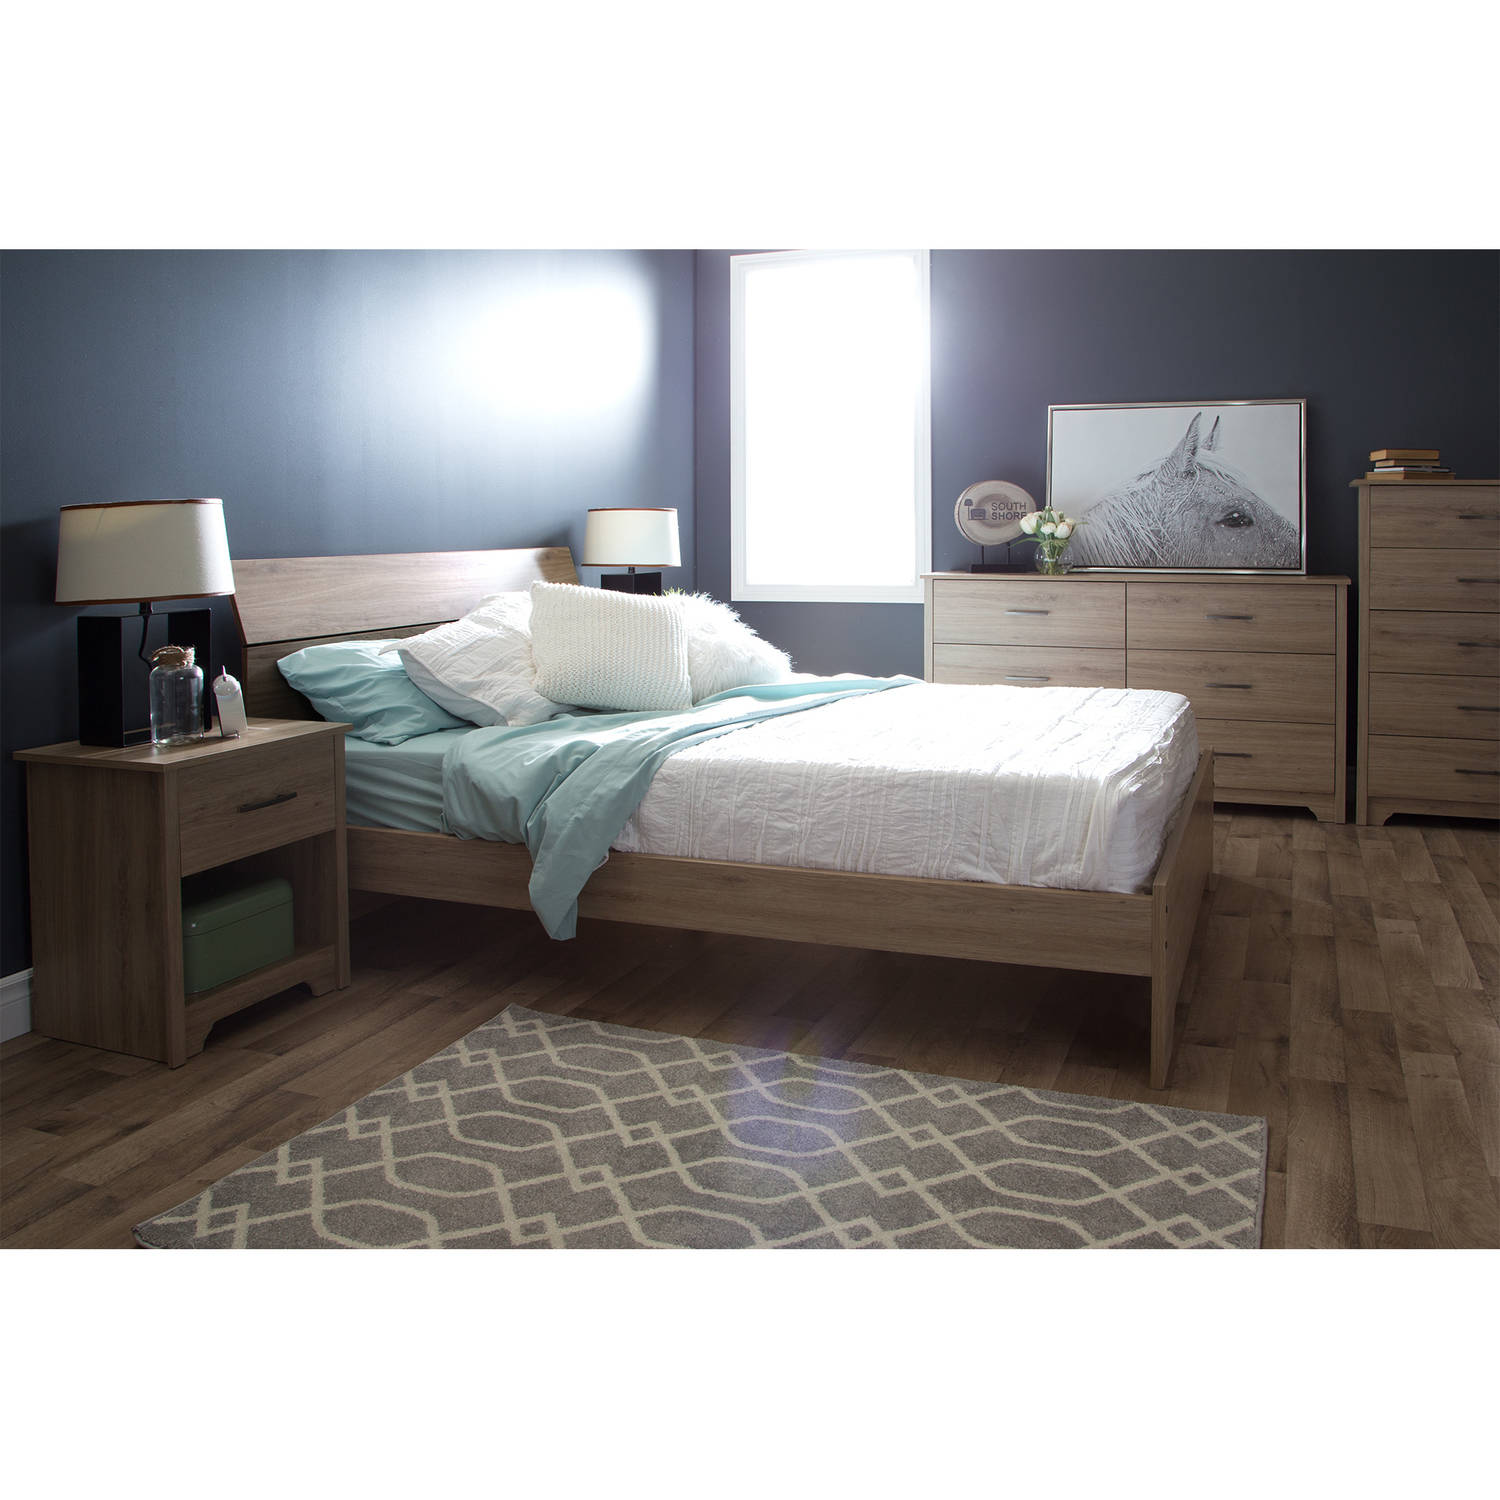 South shore fusion bedroom furniture collection - South shore furniture bedroom sets ...